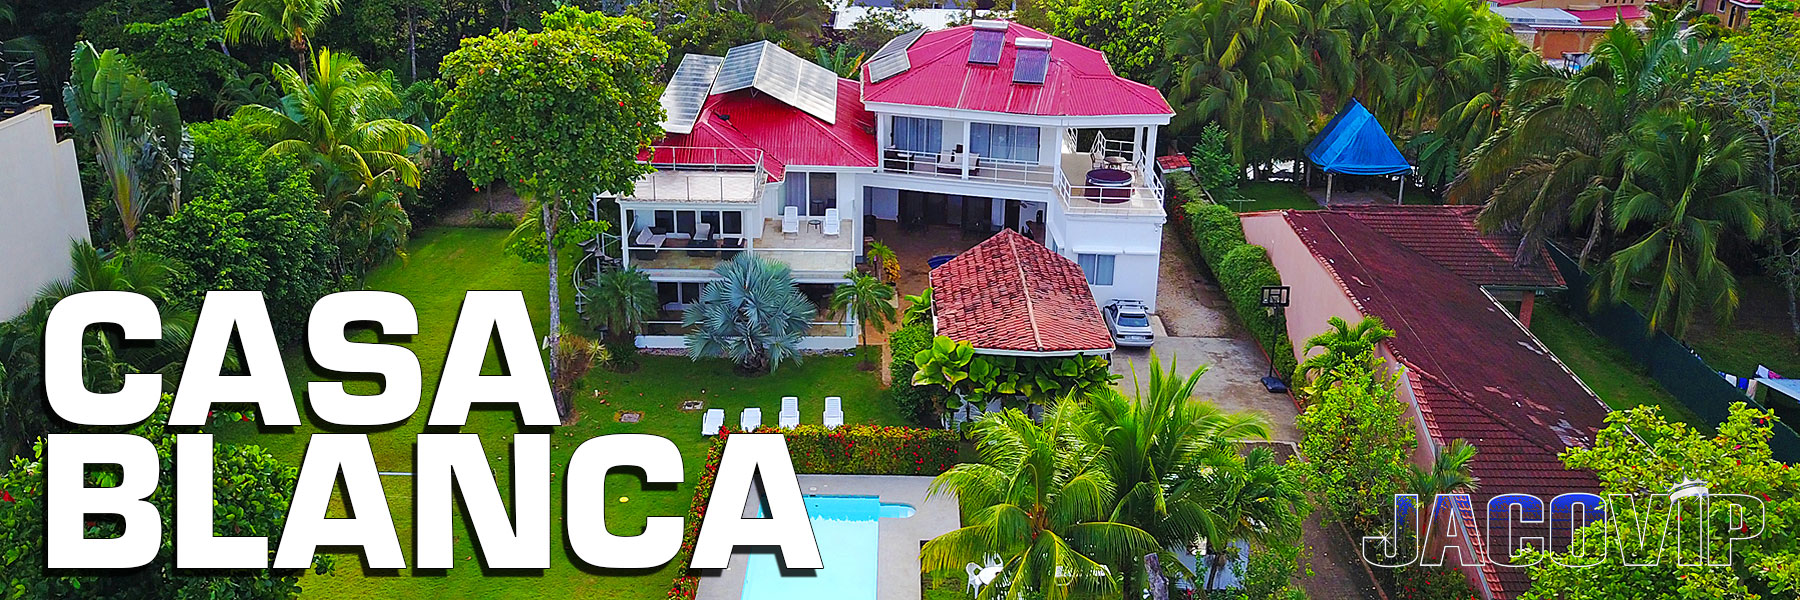 Sky view of Casa Blanca beach house rental in Jaco Costa Rica